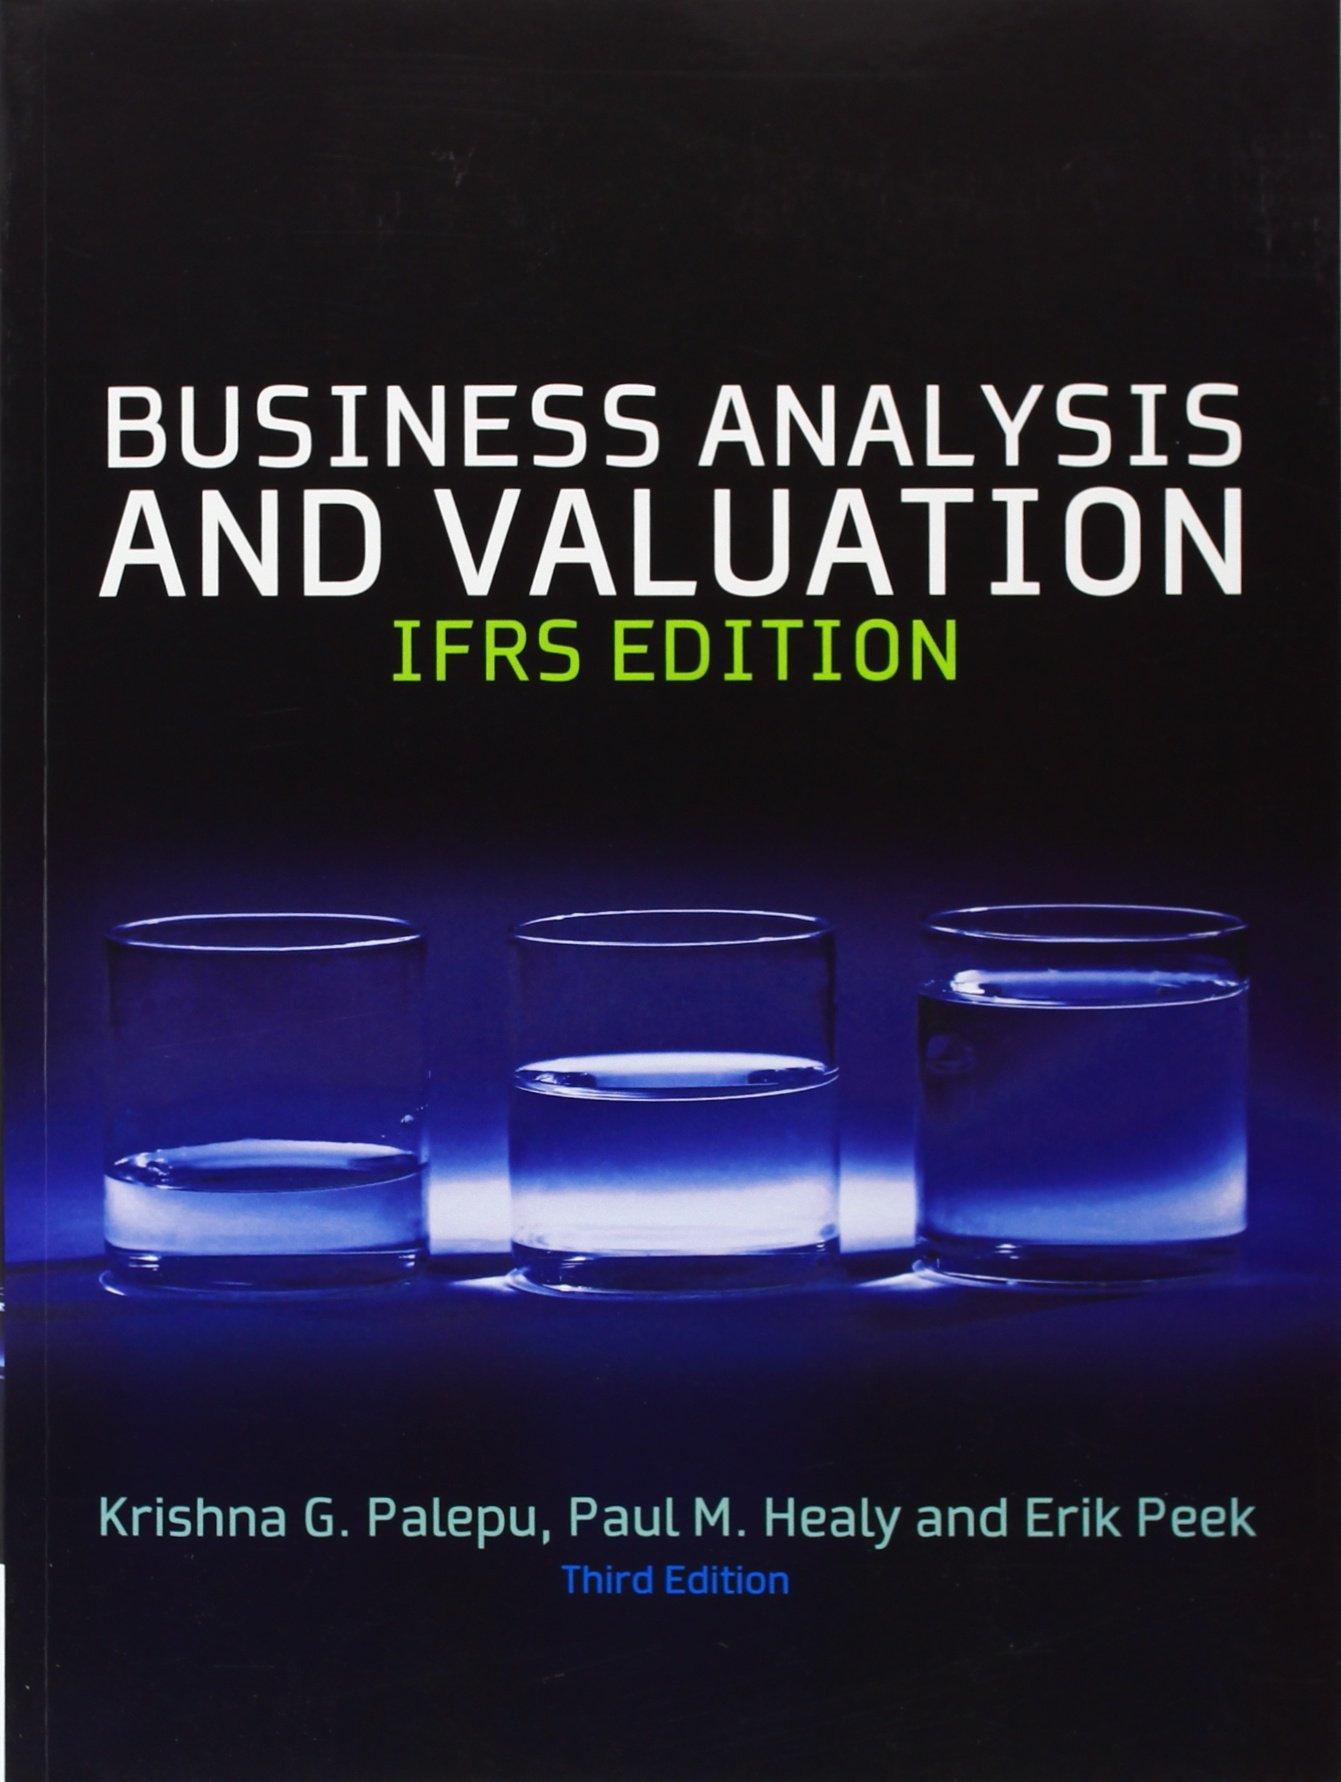 walmart valuation analysis